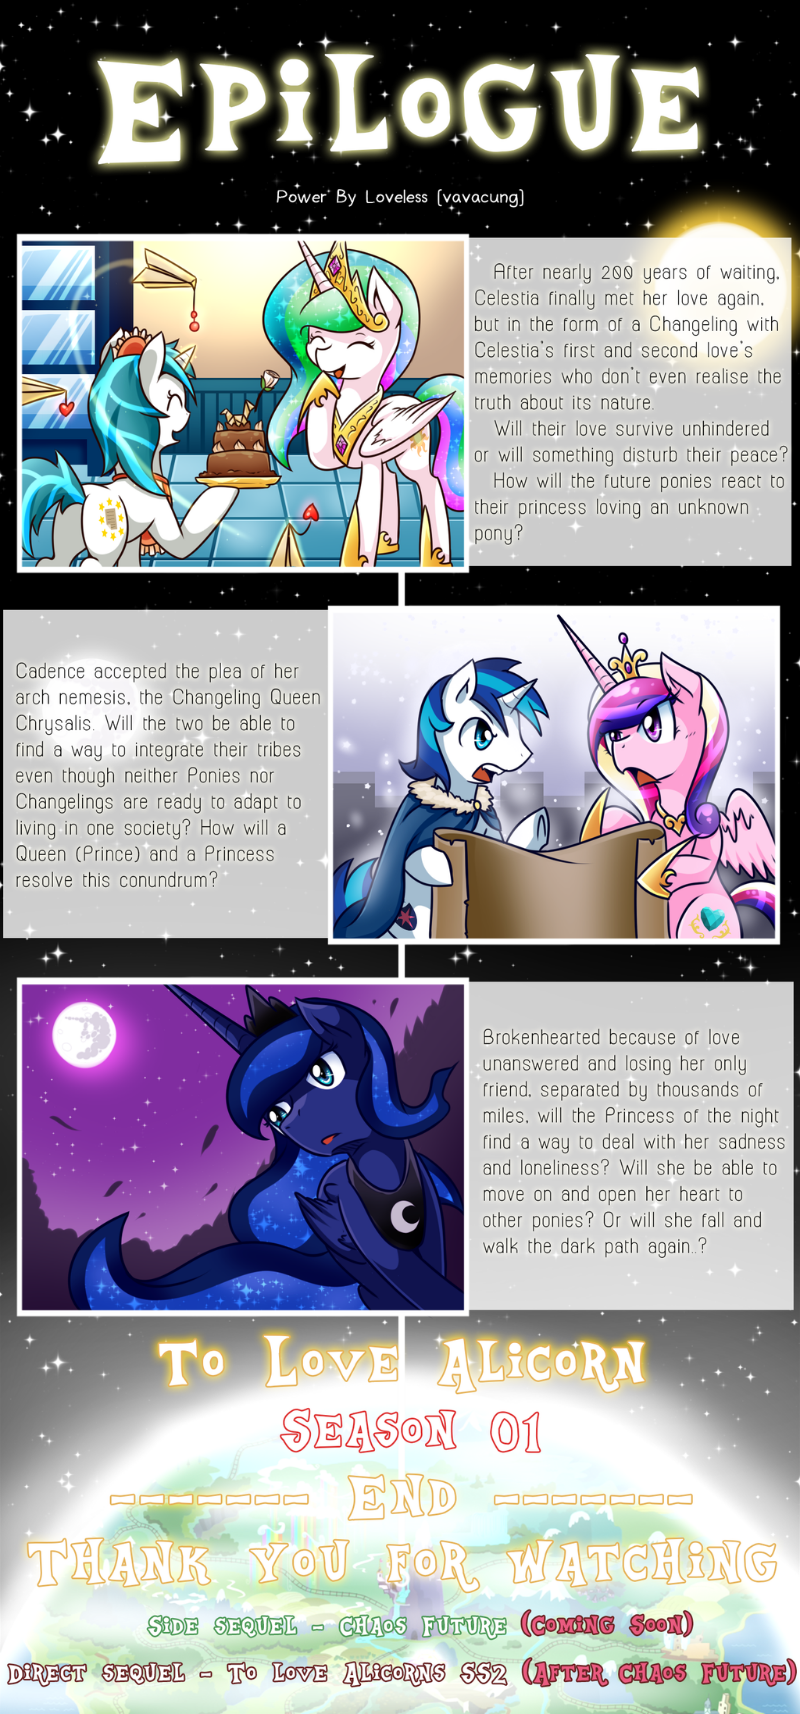 To Love Alicorn Part Epilogue (Season 1)